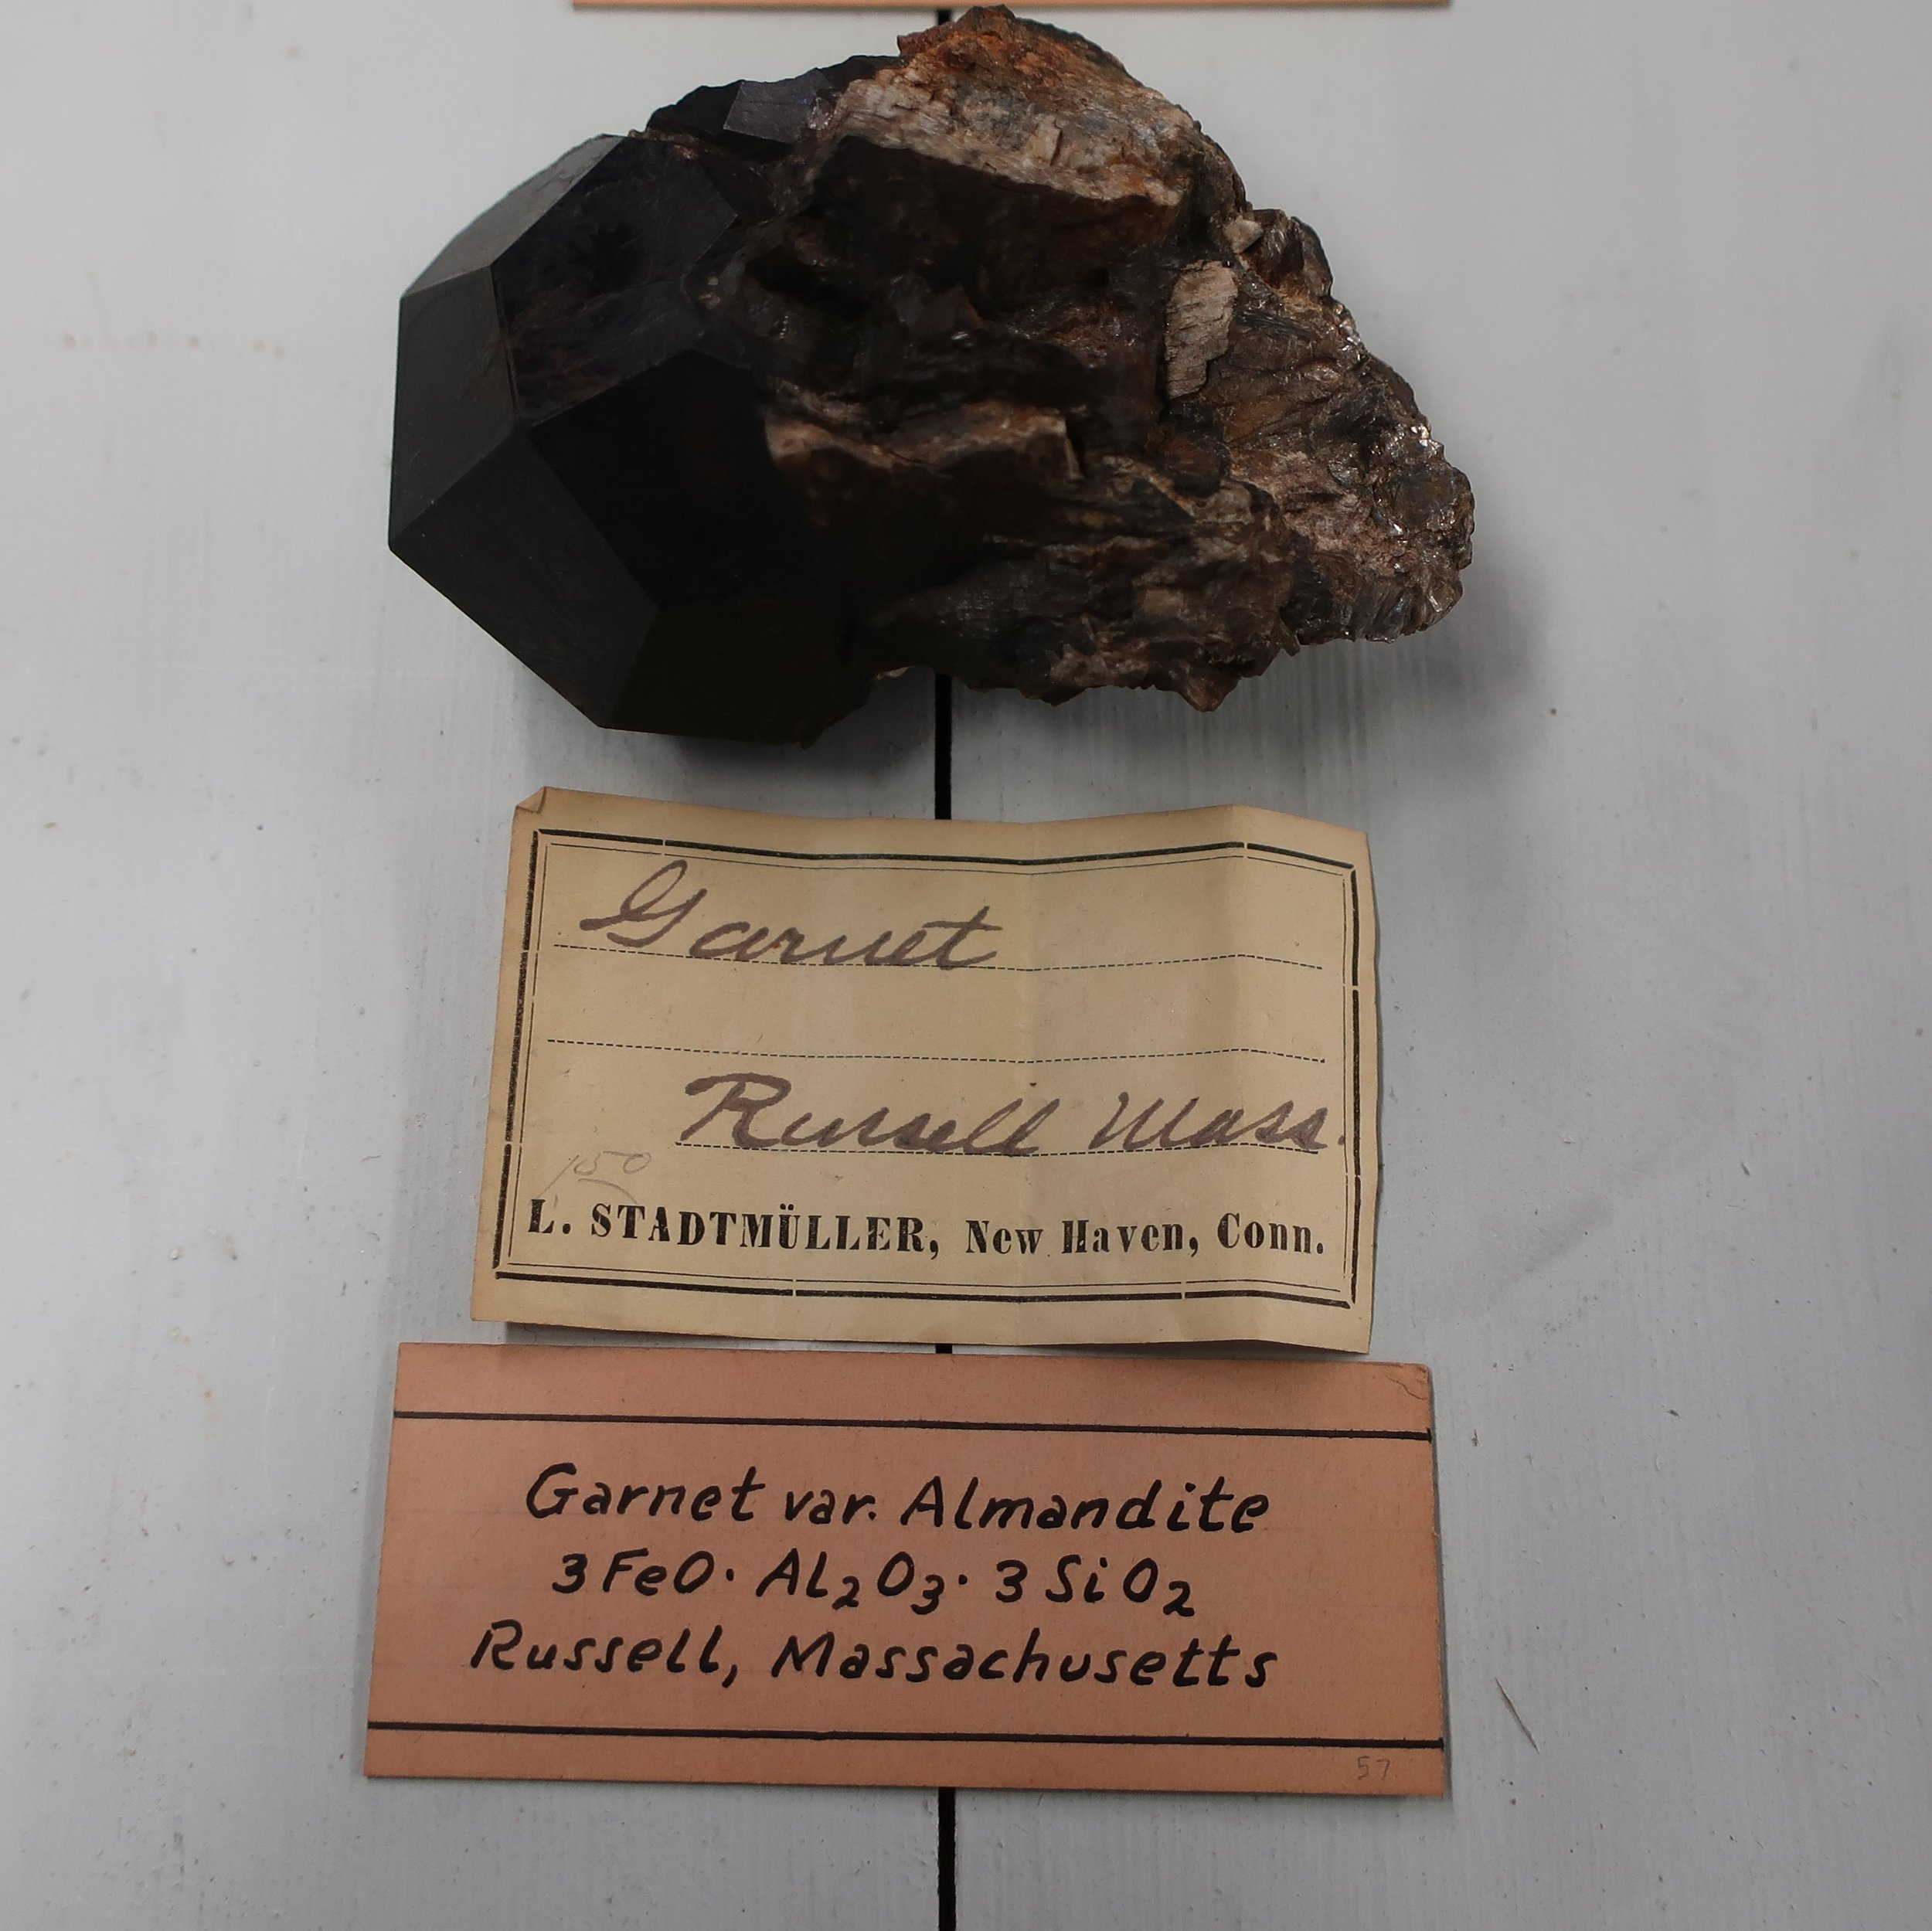 """Under this term [Garnet] are included several substances consisting principally of the same elements, but united, in variable proportions as the silicates of Lime, Iron, and Manganeese.   Almandine (Precious Garnet)  consists of 36 silica, 22 alumina, protoxide of Iron 37, Lime 3. The principal colour of this beautiful mineral is red of various shades having sometimes a tinge of yellow, or blue, it is commonly translucent often transparent, it occurs crystalized in the rhombic dodecahedron, and may sometimes be cleared, though not without difficulty, parallel to the planes of that solid, it is insoluable in acid, B.B. &. Se. it fuses into a black globule. It is much esteemed as a precious stone. The finest are brought from Ceylon and Pegu, where they occur in alluvial deposits. Bohemia produces many. It is believed to be the common Carbuncle of the ancients, tho' they also applied this term to the ruby, as well as to other gems."""